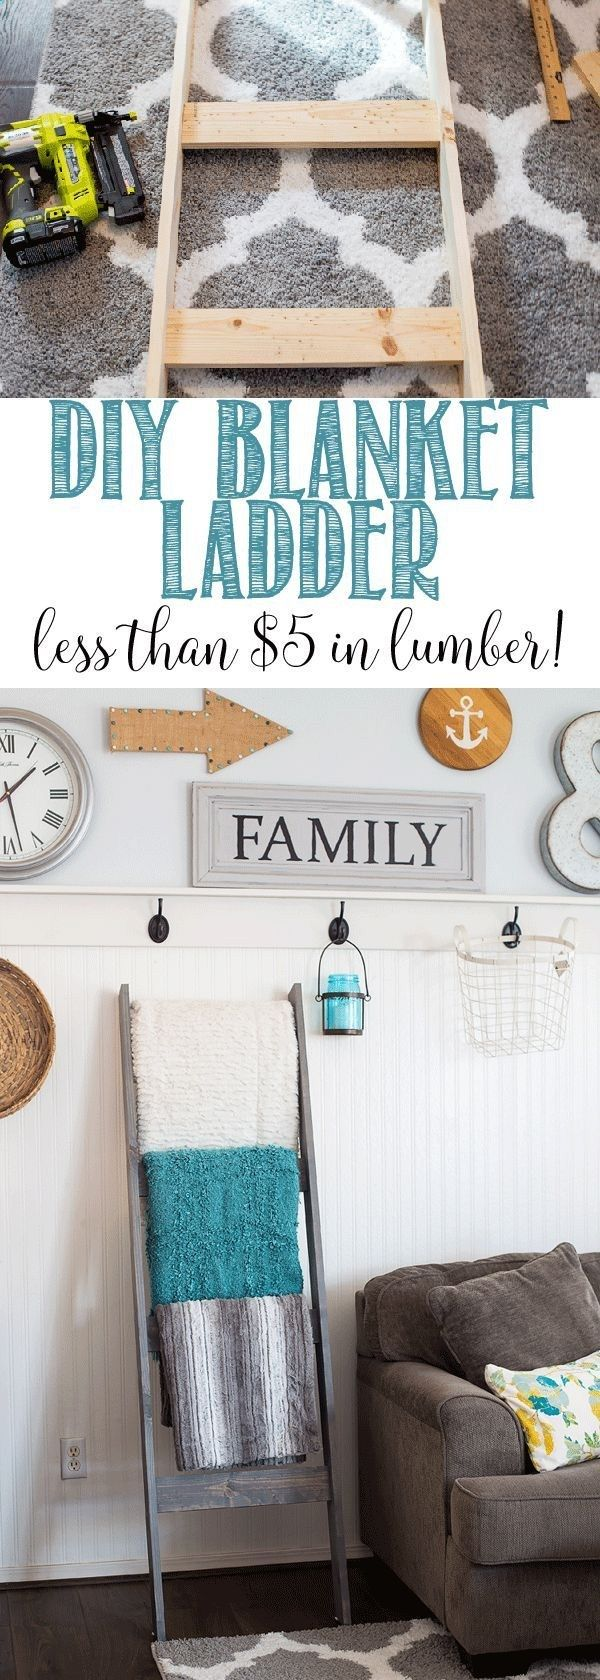 DIY Blanket Ladder for less than $5 in lumber!!!! Great step by step tutorial so you can make your own! & DIY Blanket Ladder for less than $5 in lumber!!!! Great step by step ...